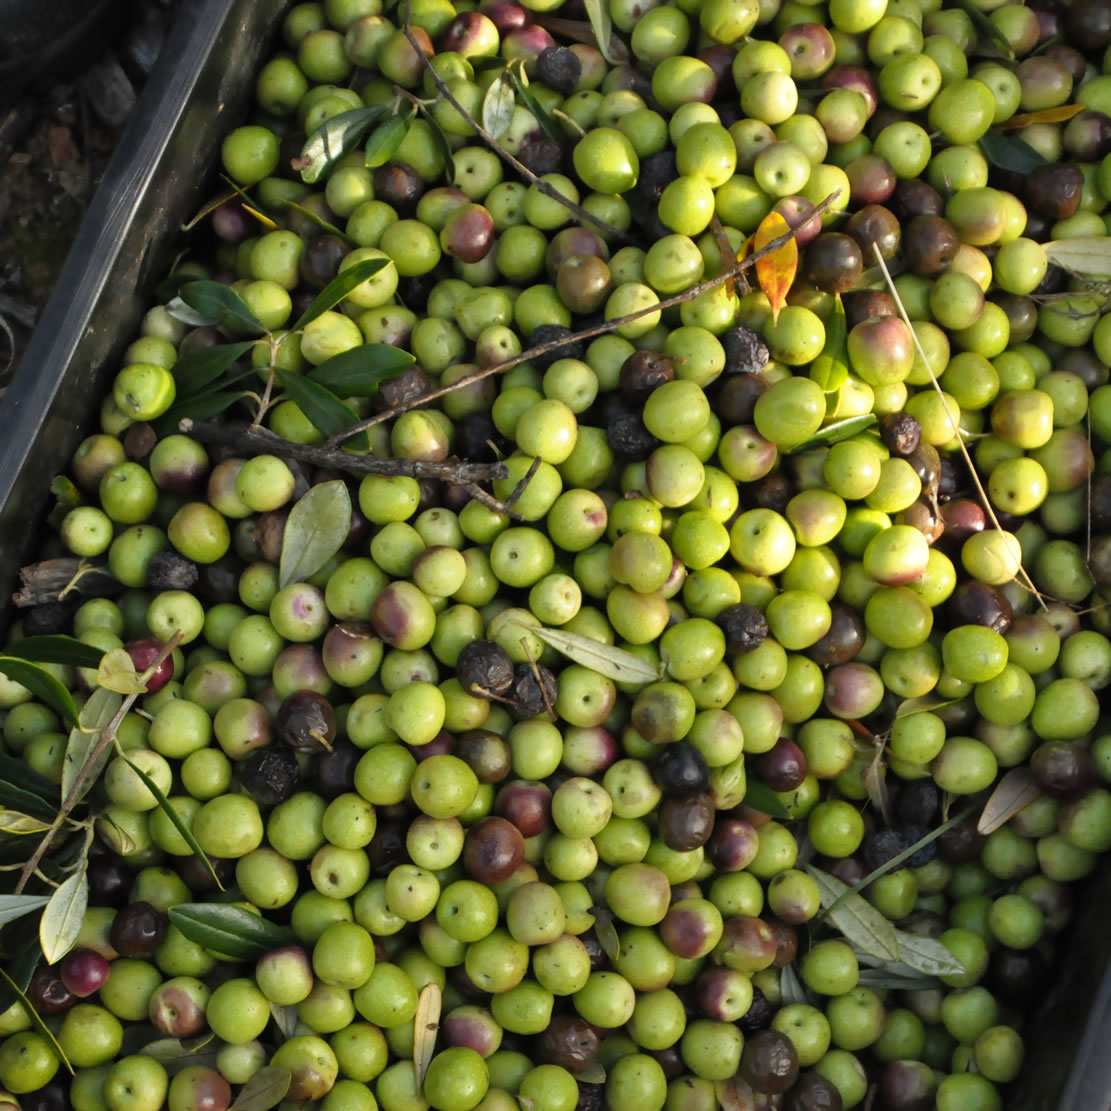 South African olives